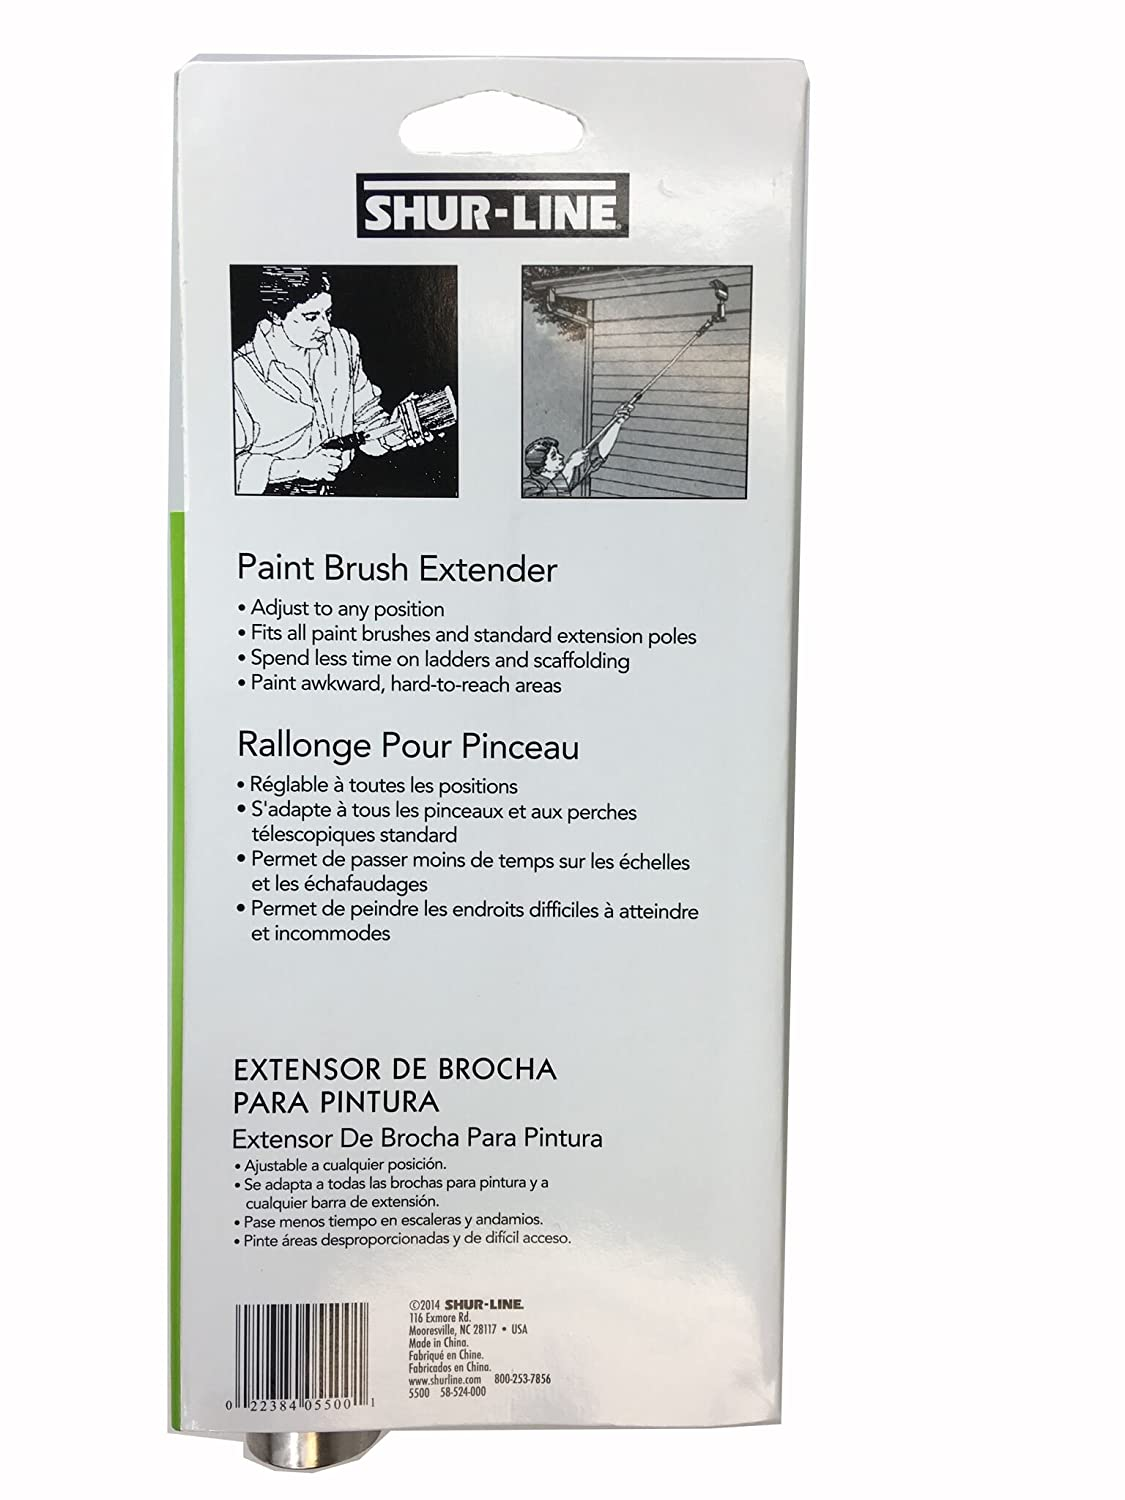 paint brush holder for extension pole. shur-line 5500 brush extender for paint brushes and extension poles - painting hand tools amazon.com holder pole